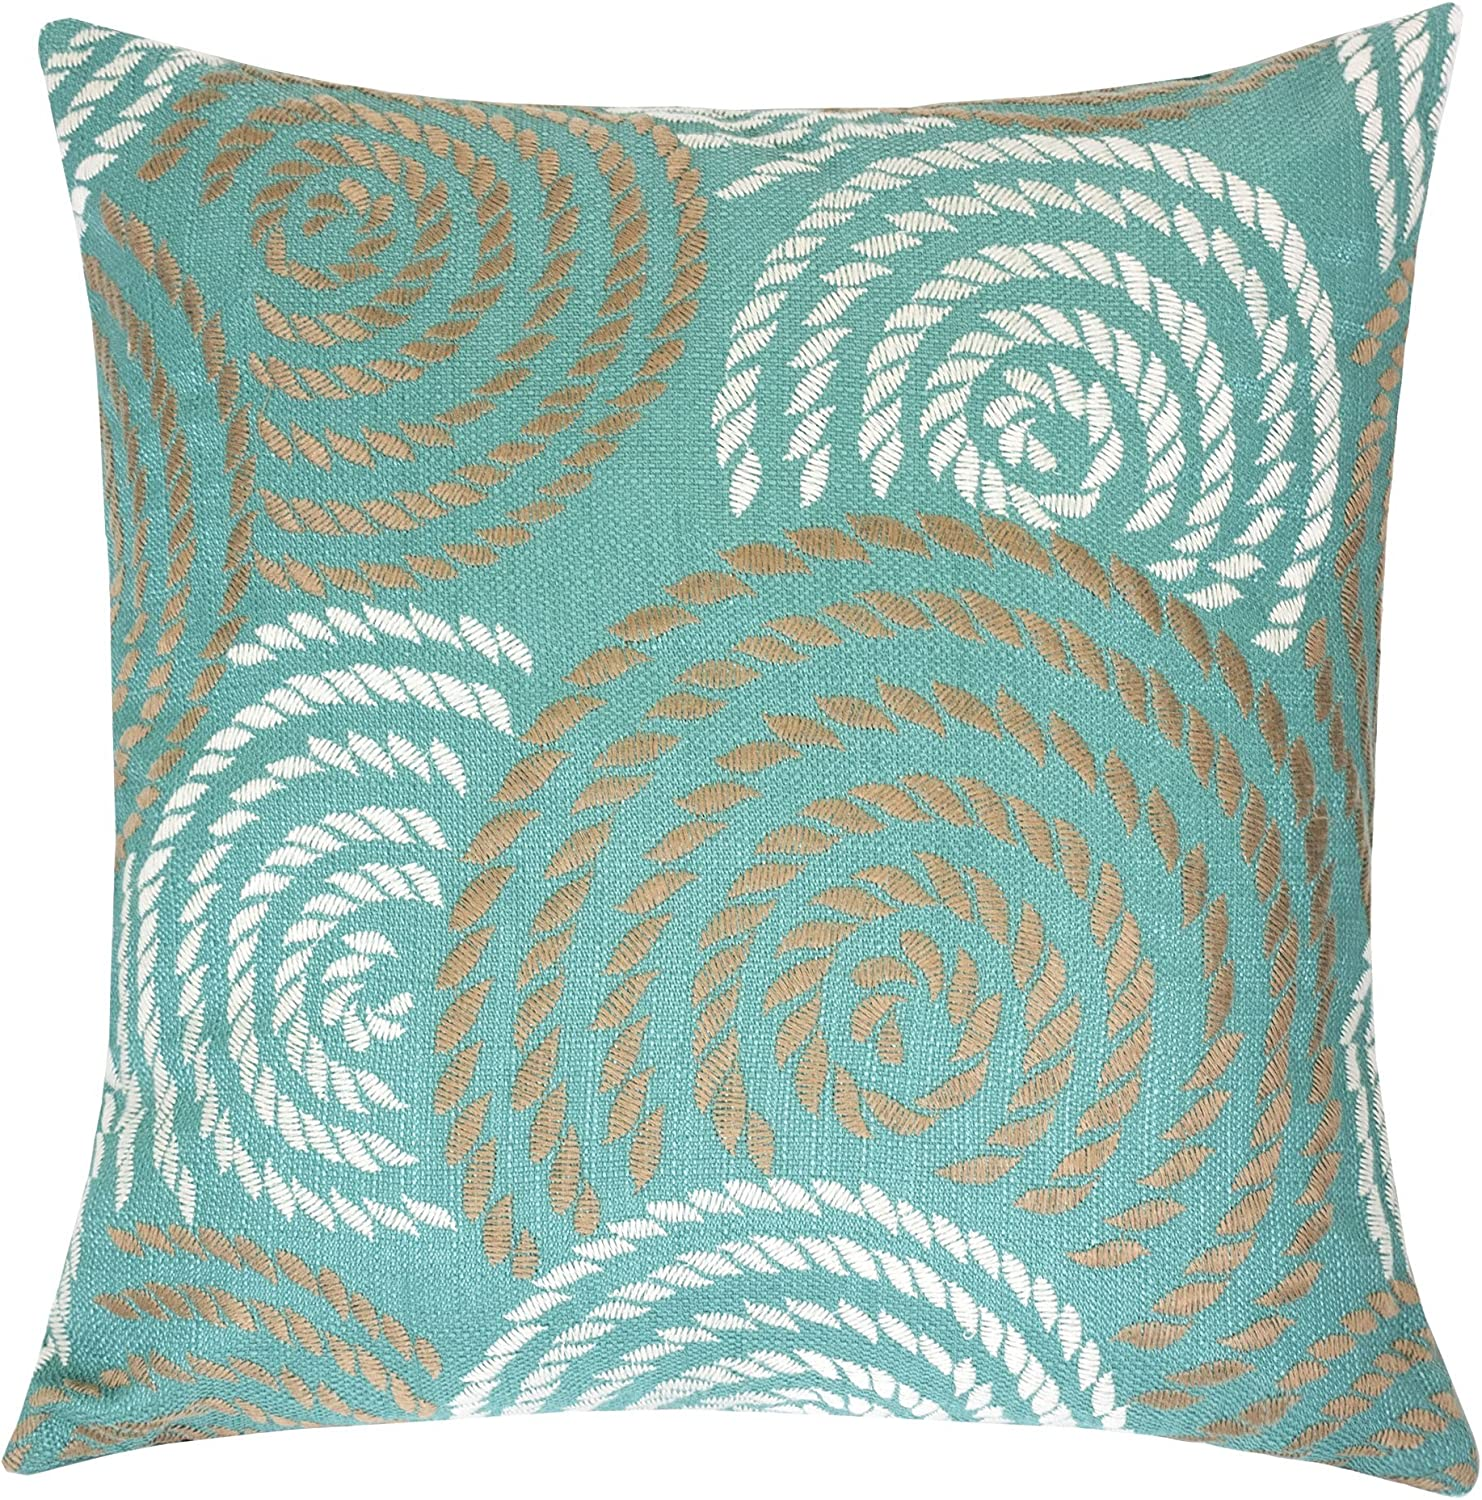 Modern Teal Decorative Throw Pillow  from images-na.ssl-images-amazon.com